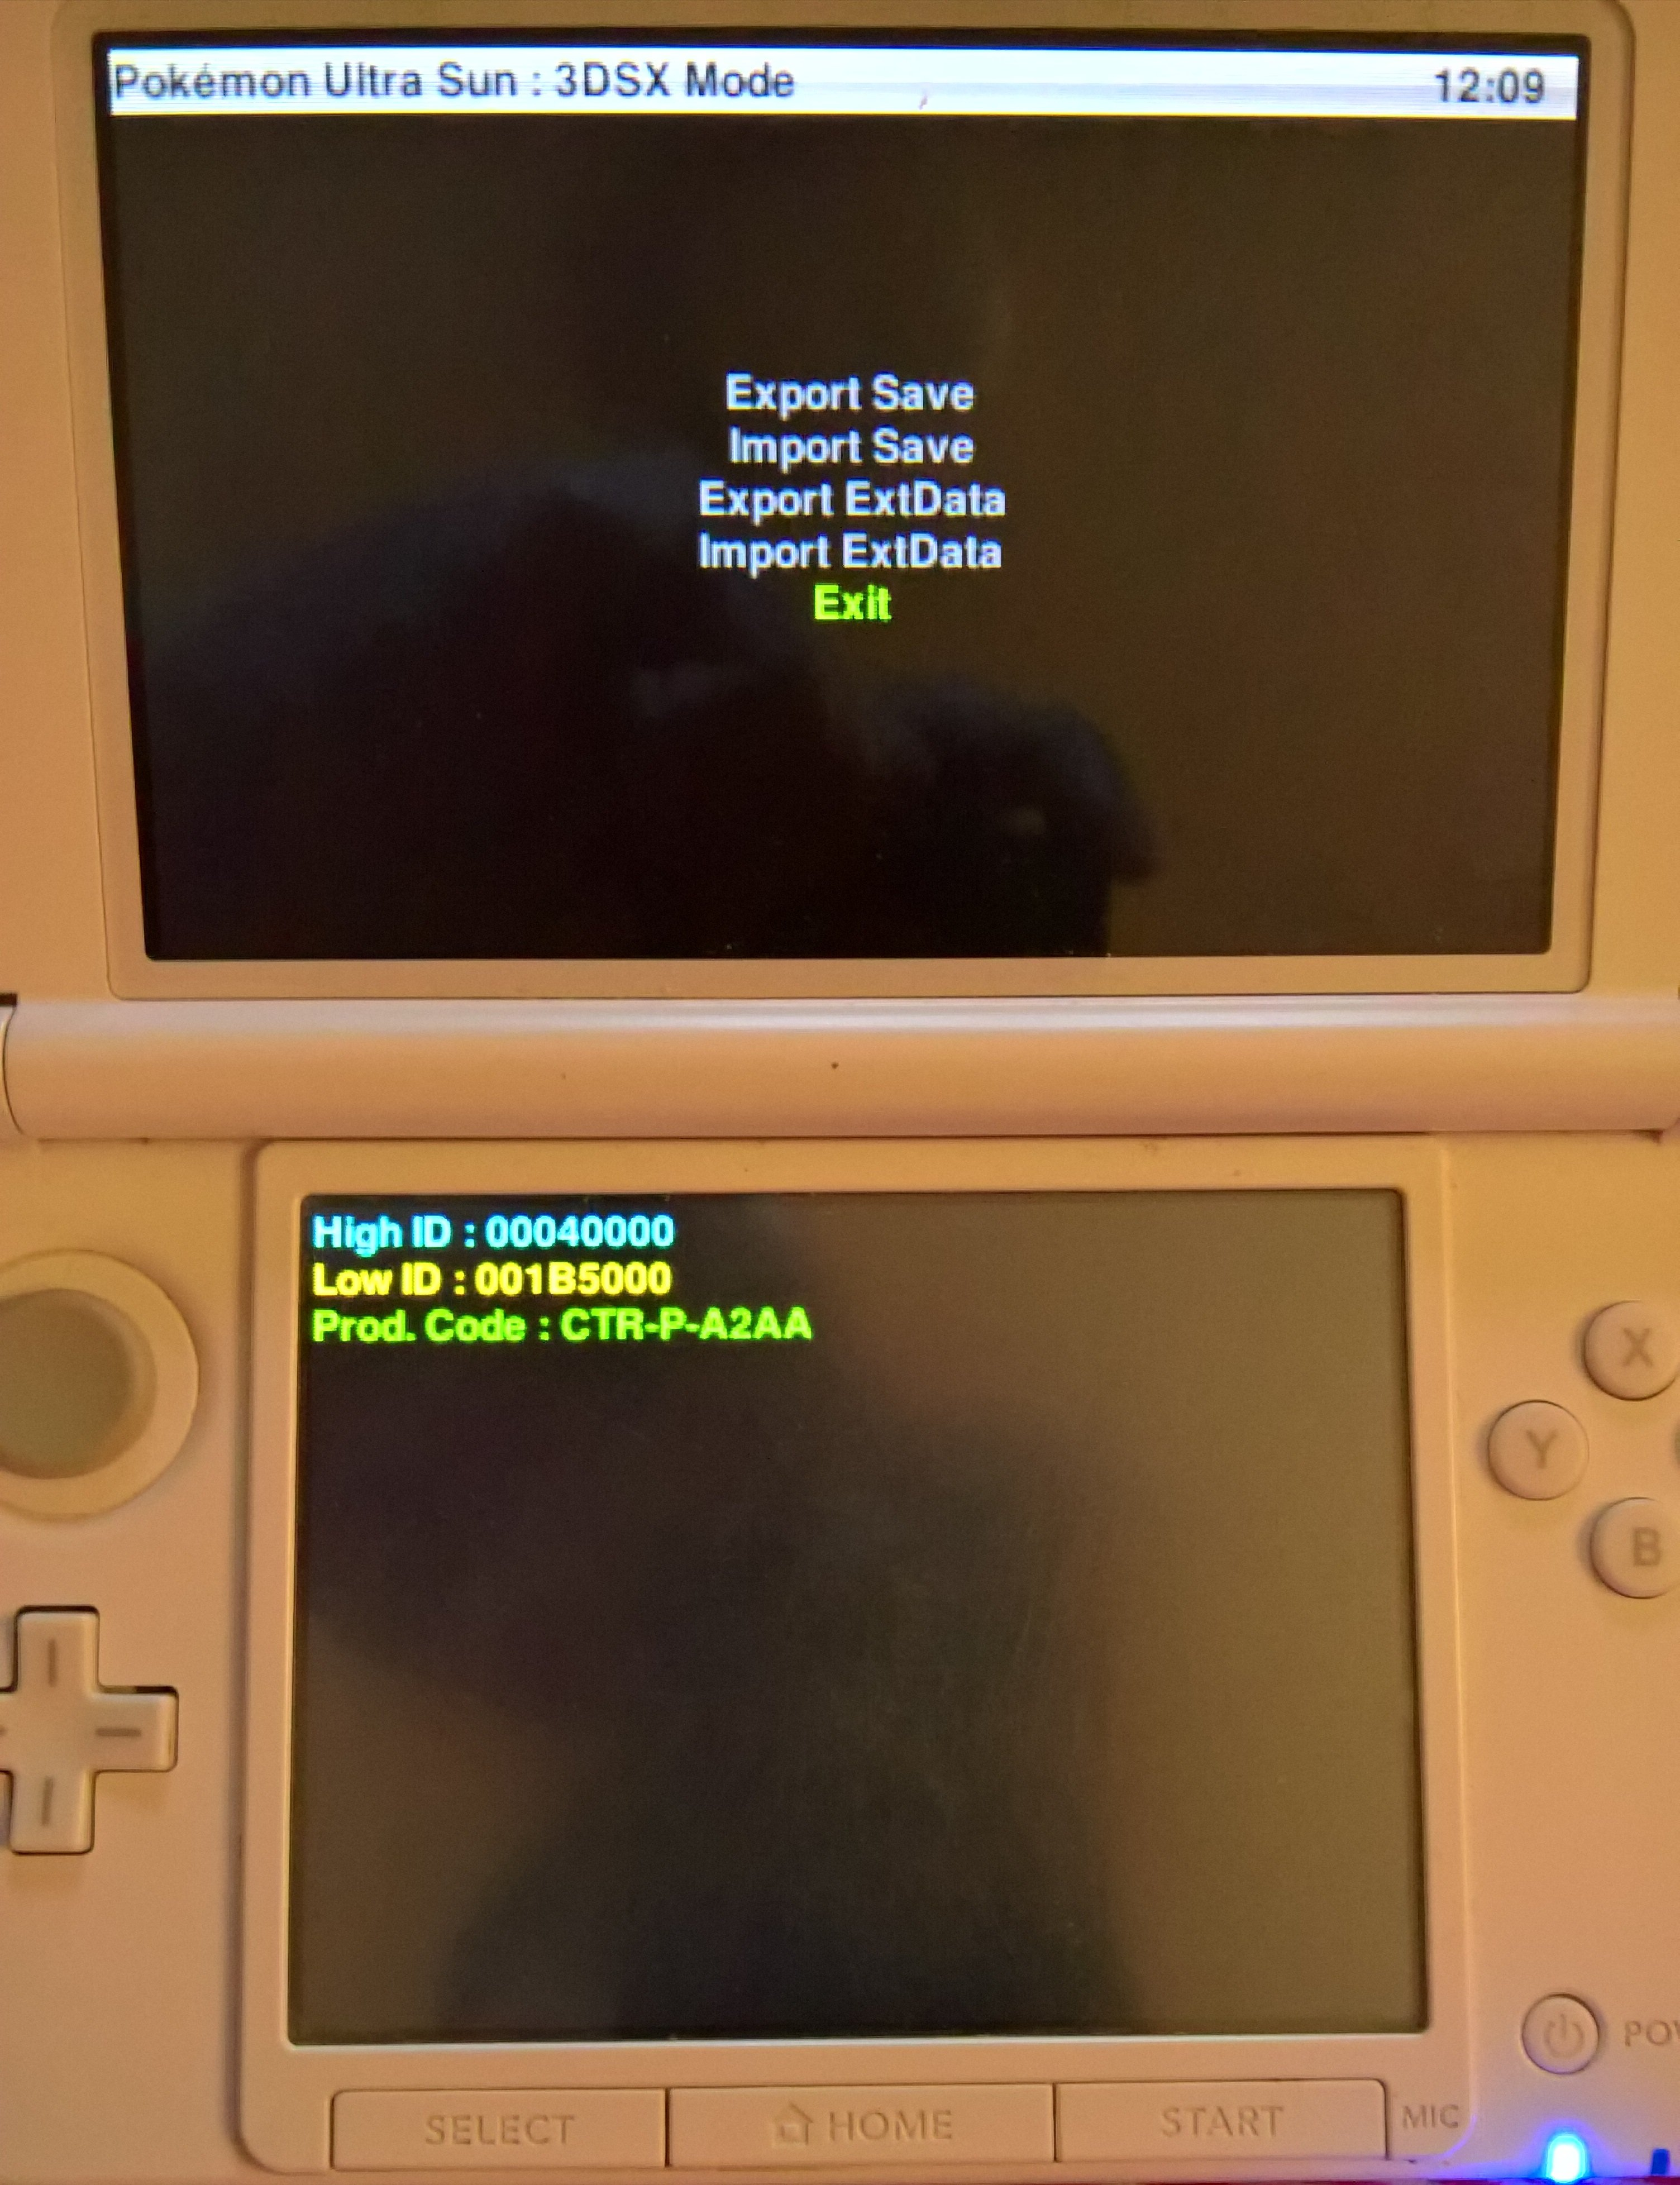 Managing 3DS Saves: Using JKSM - Saves - Guides and Other Resources